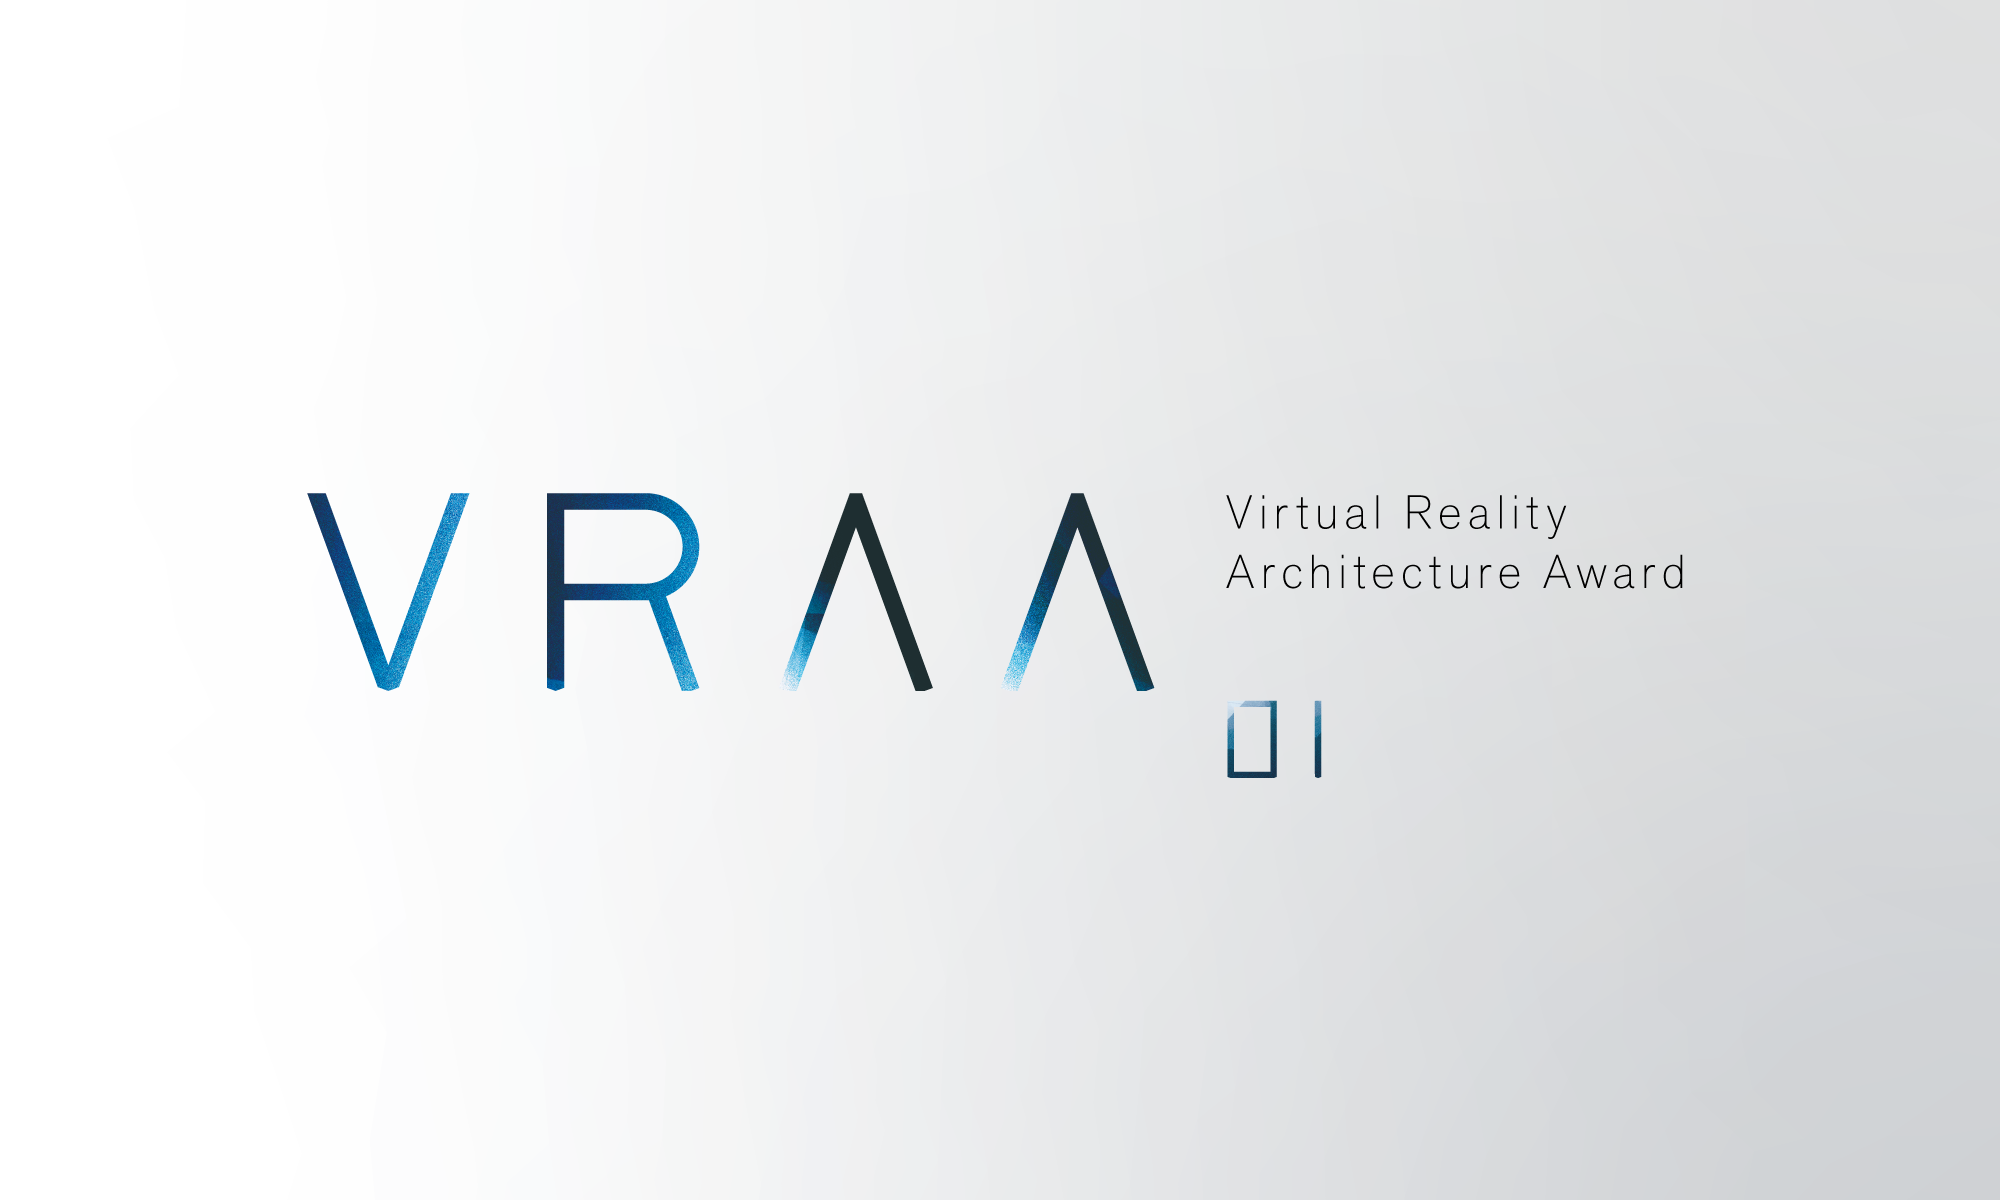 VR Architecture Award(VRAA)01